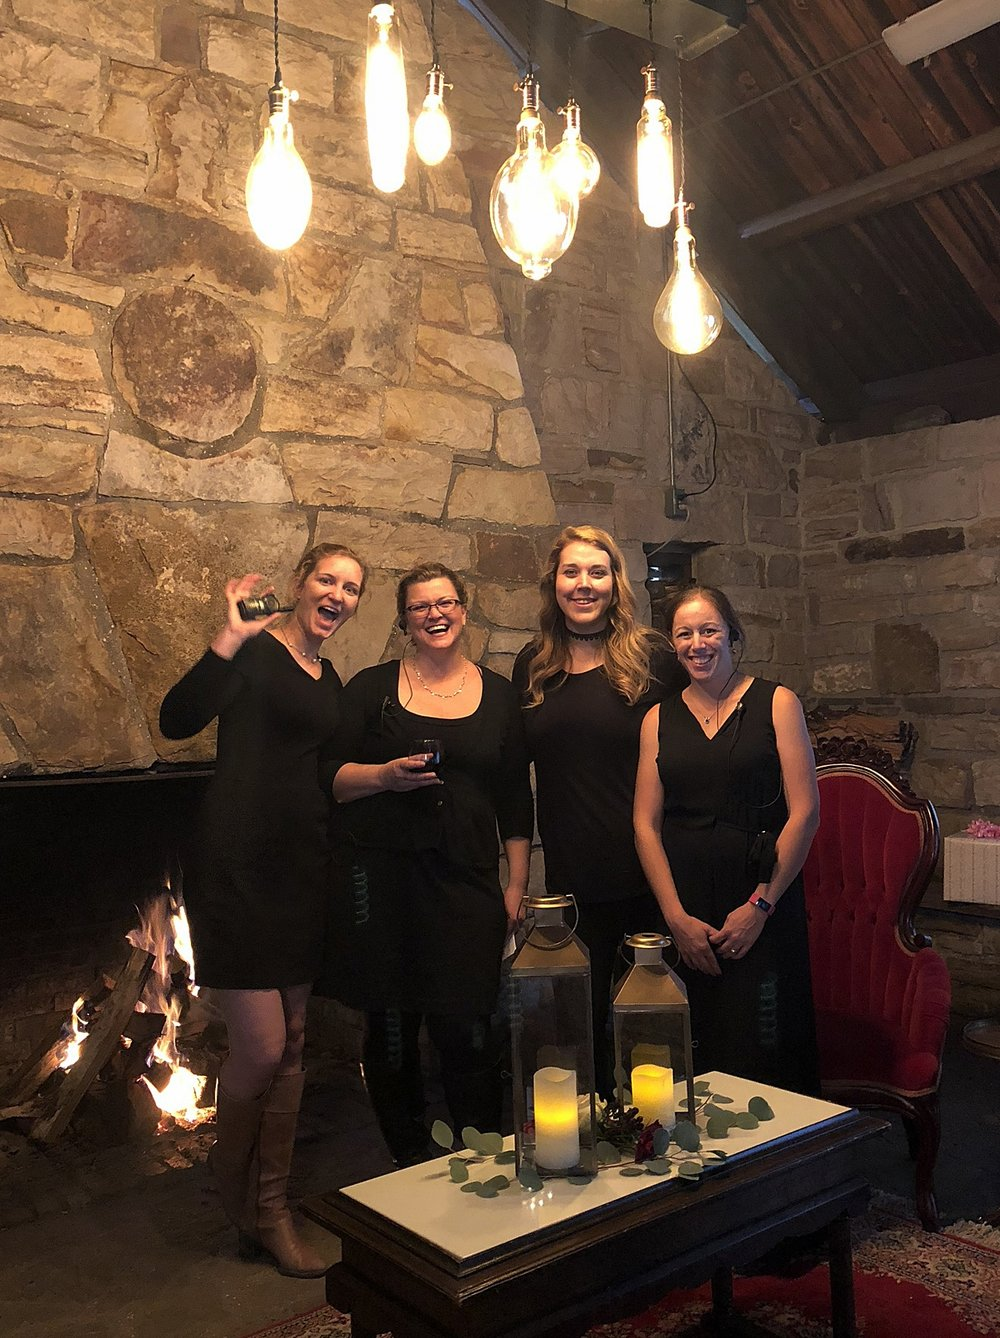 Farmhouse Fête Planning Team - pictured from left to rightCaroline Miller- PlannerLeigh Clarke- OwnerDanielle Cline- Planner, Floral DesignerApril Hershberger- Planner, Marketing